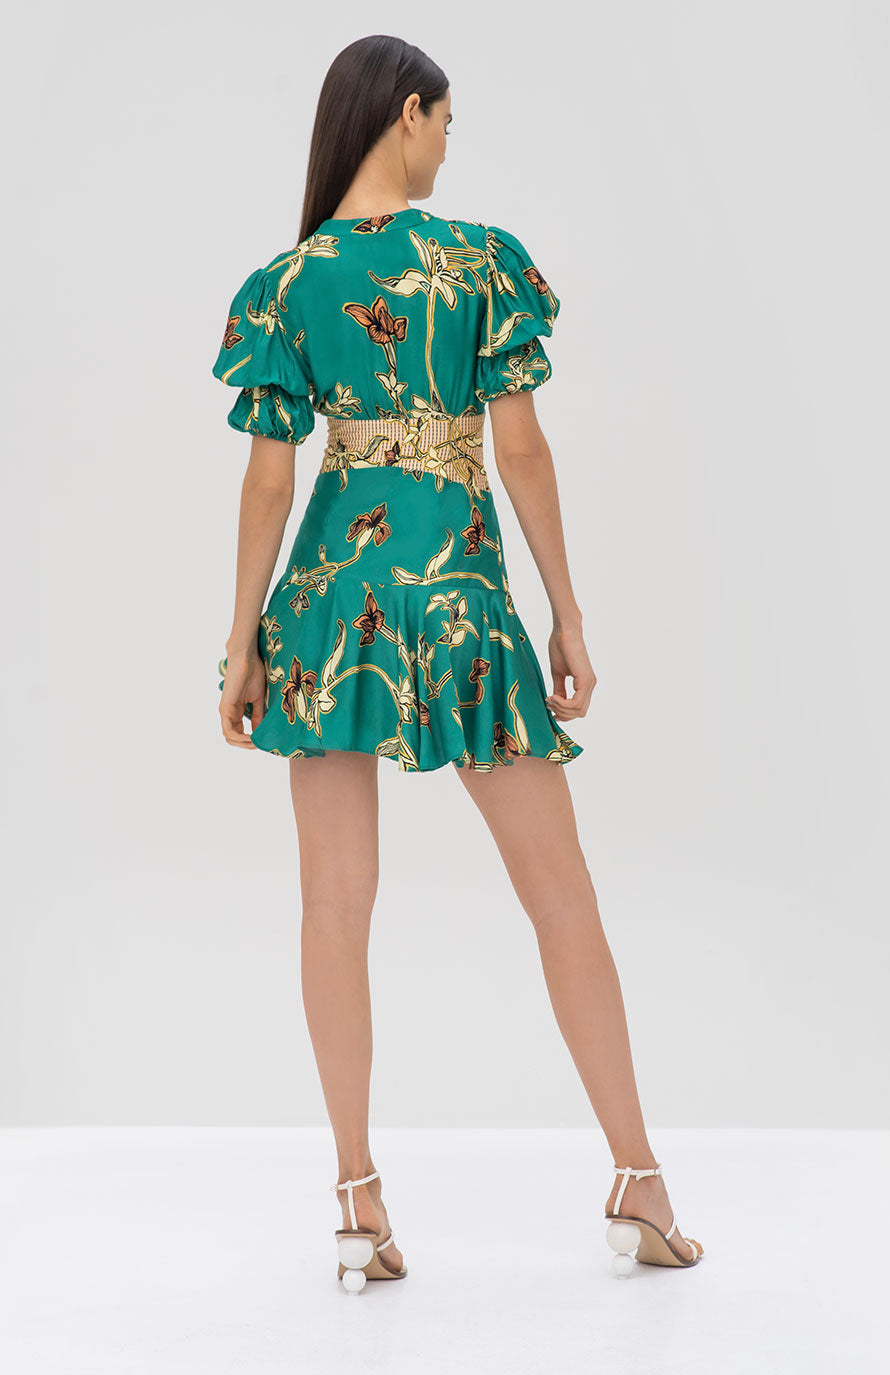 Alexis Nari Dress Jade Green Orchid - Rear View